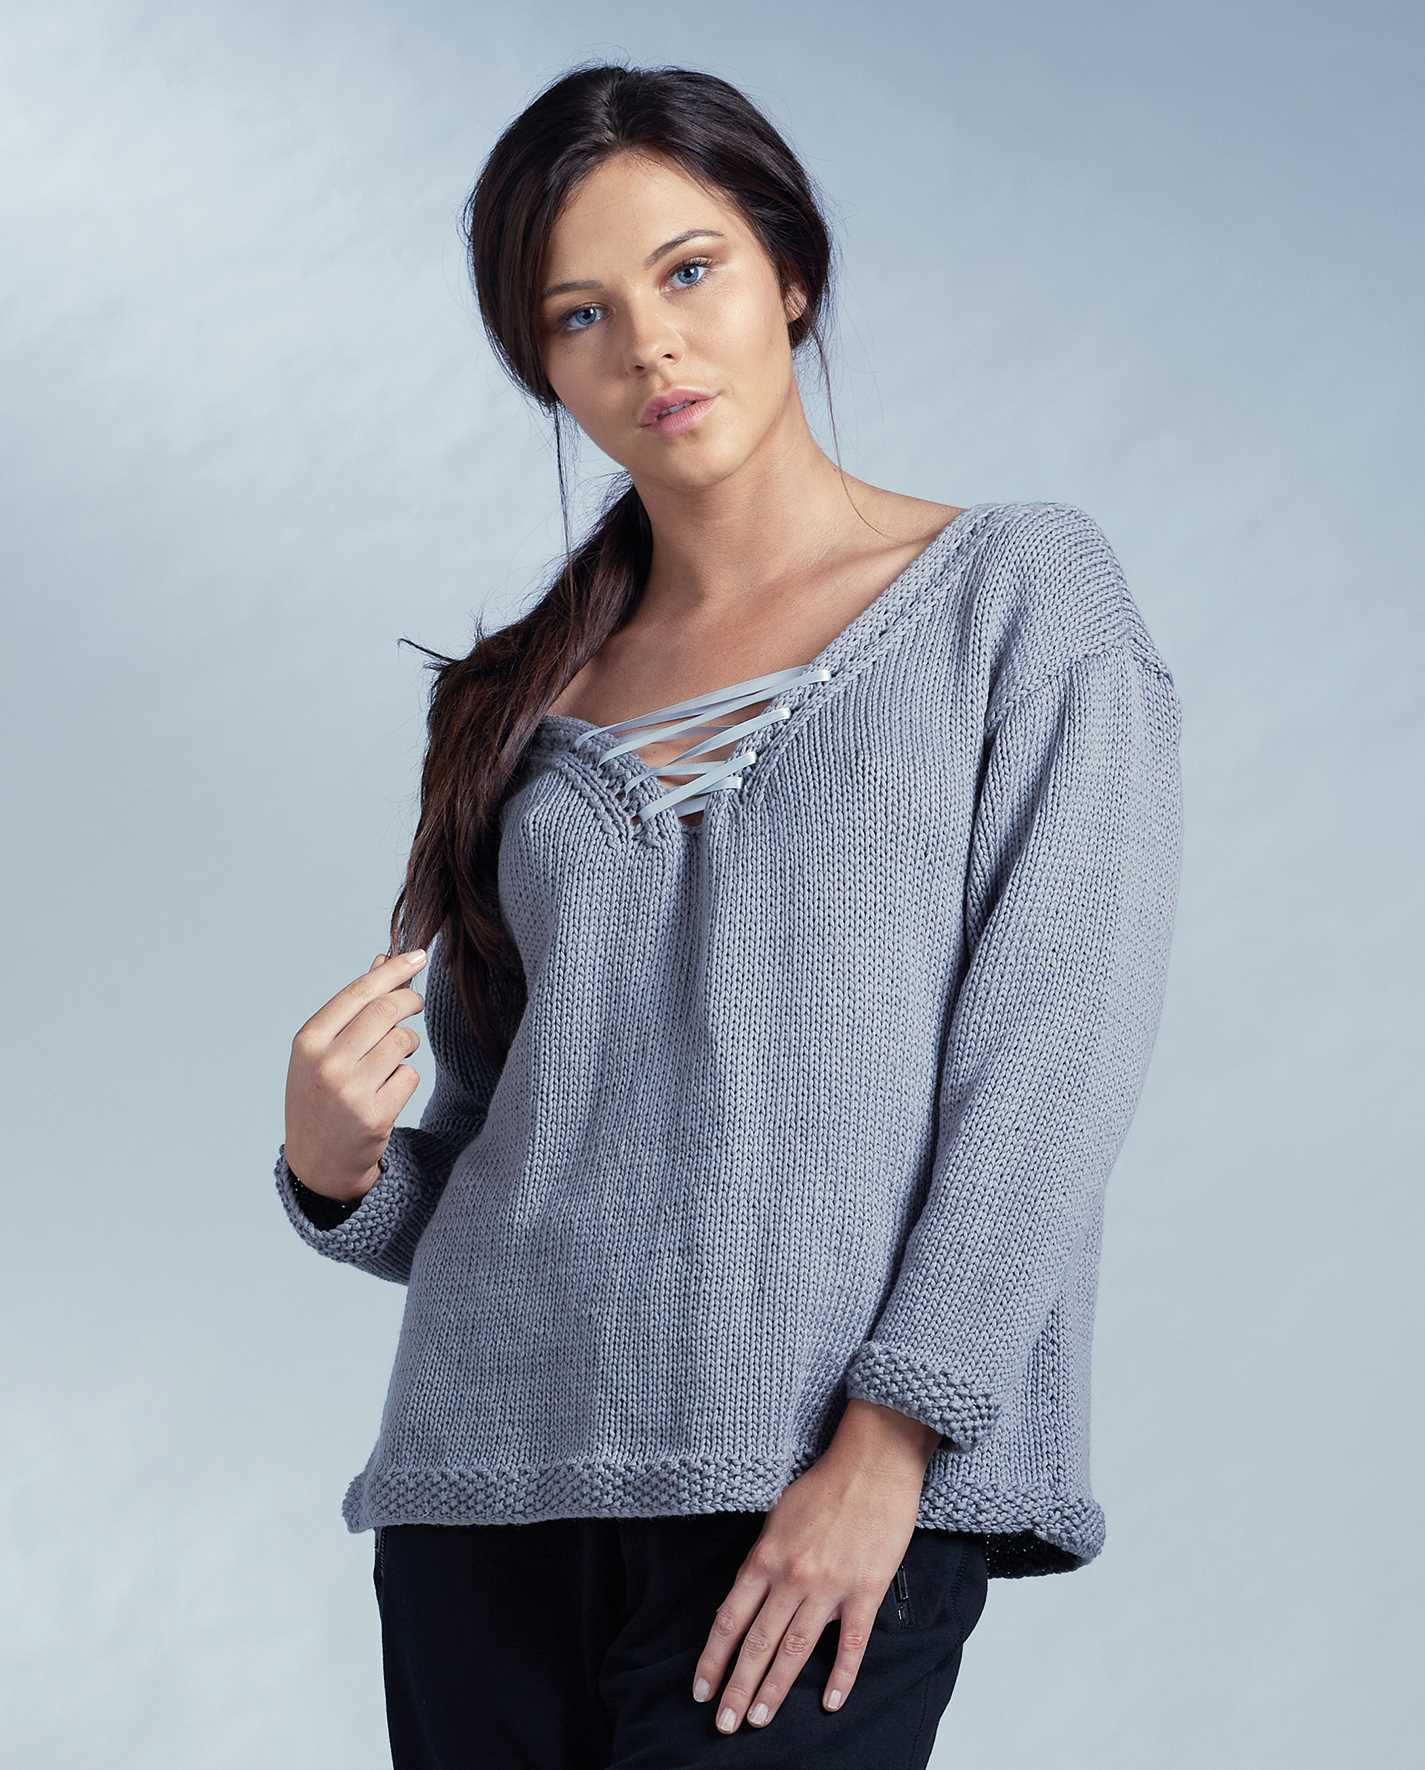 Free Knitting Pattern for a Lace Front Sweater ⋆ Knitting Bee